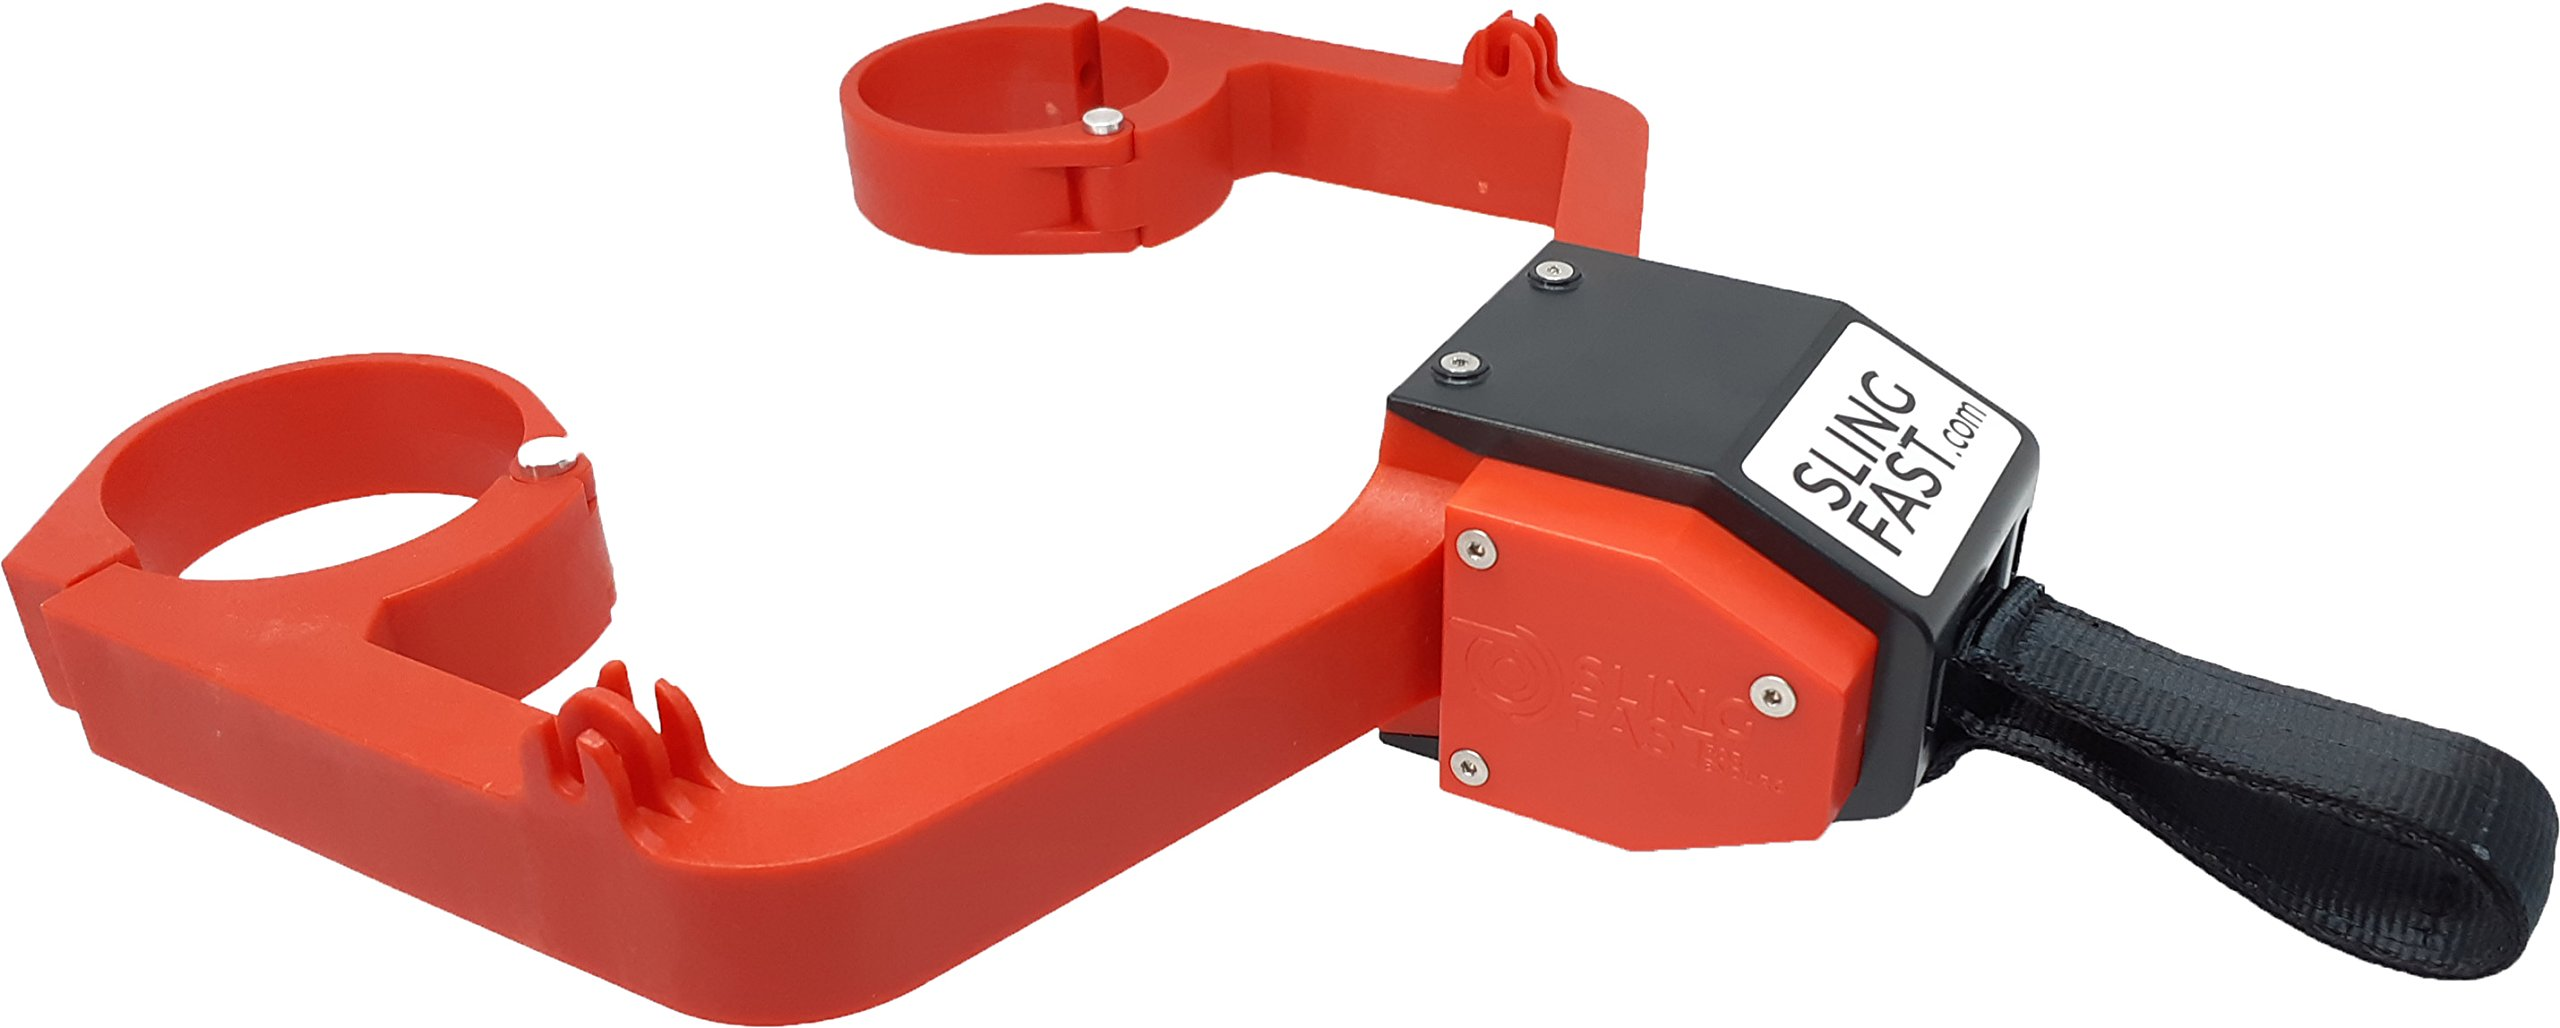 SLING FAST (R-In). Rapid retractable and automatic strap sling for extreme enduro. (Full Red) Color for GAS GAS, HONDA or Beta